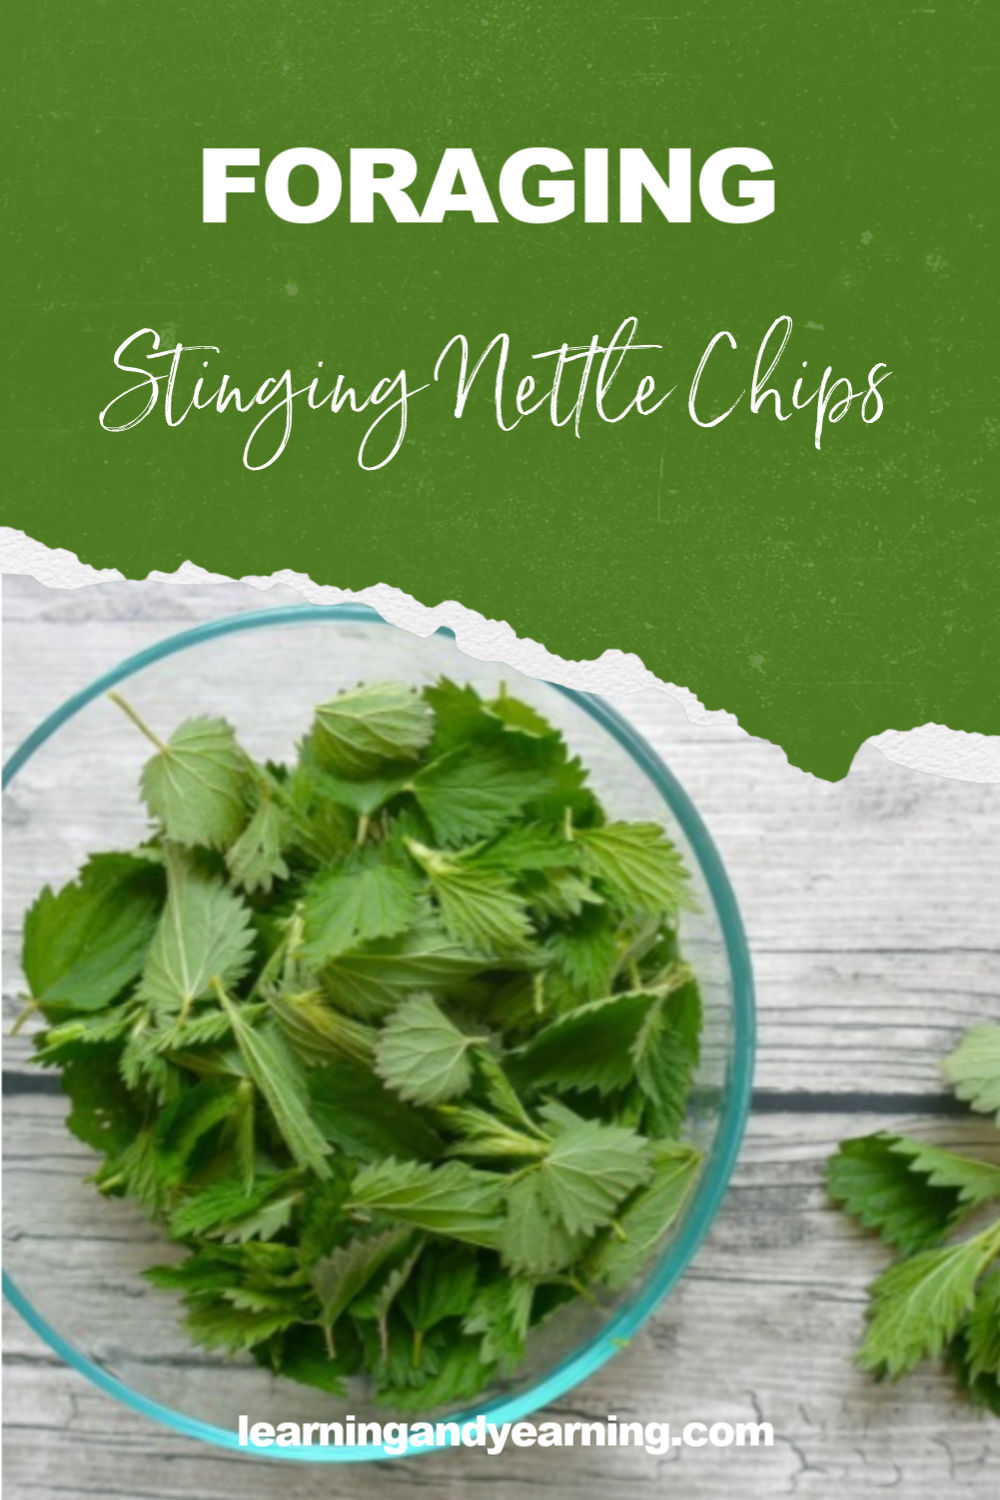 Stinging nettle chips! #foraging